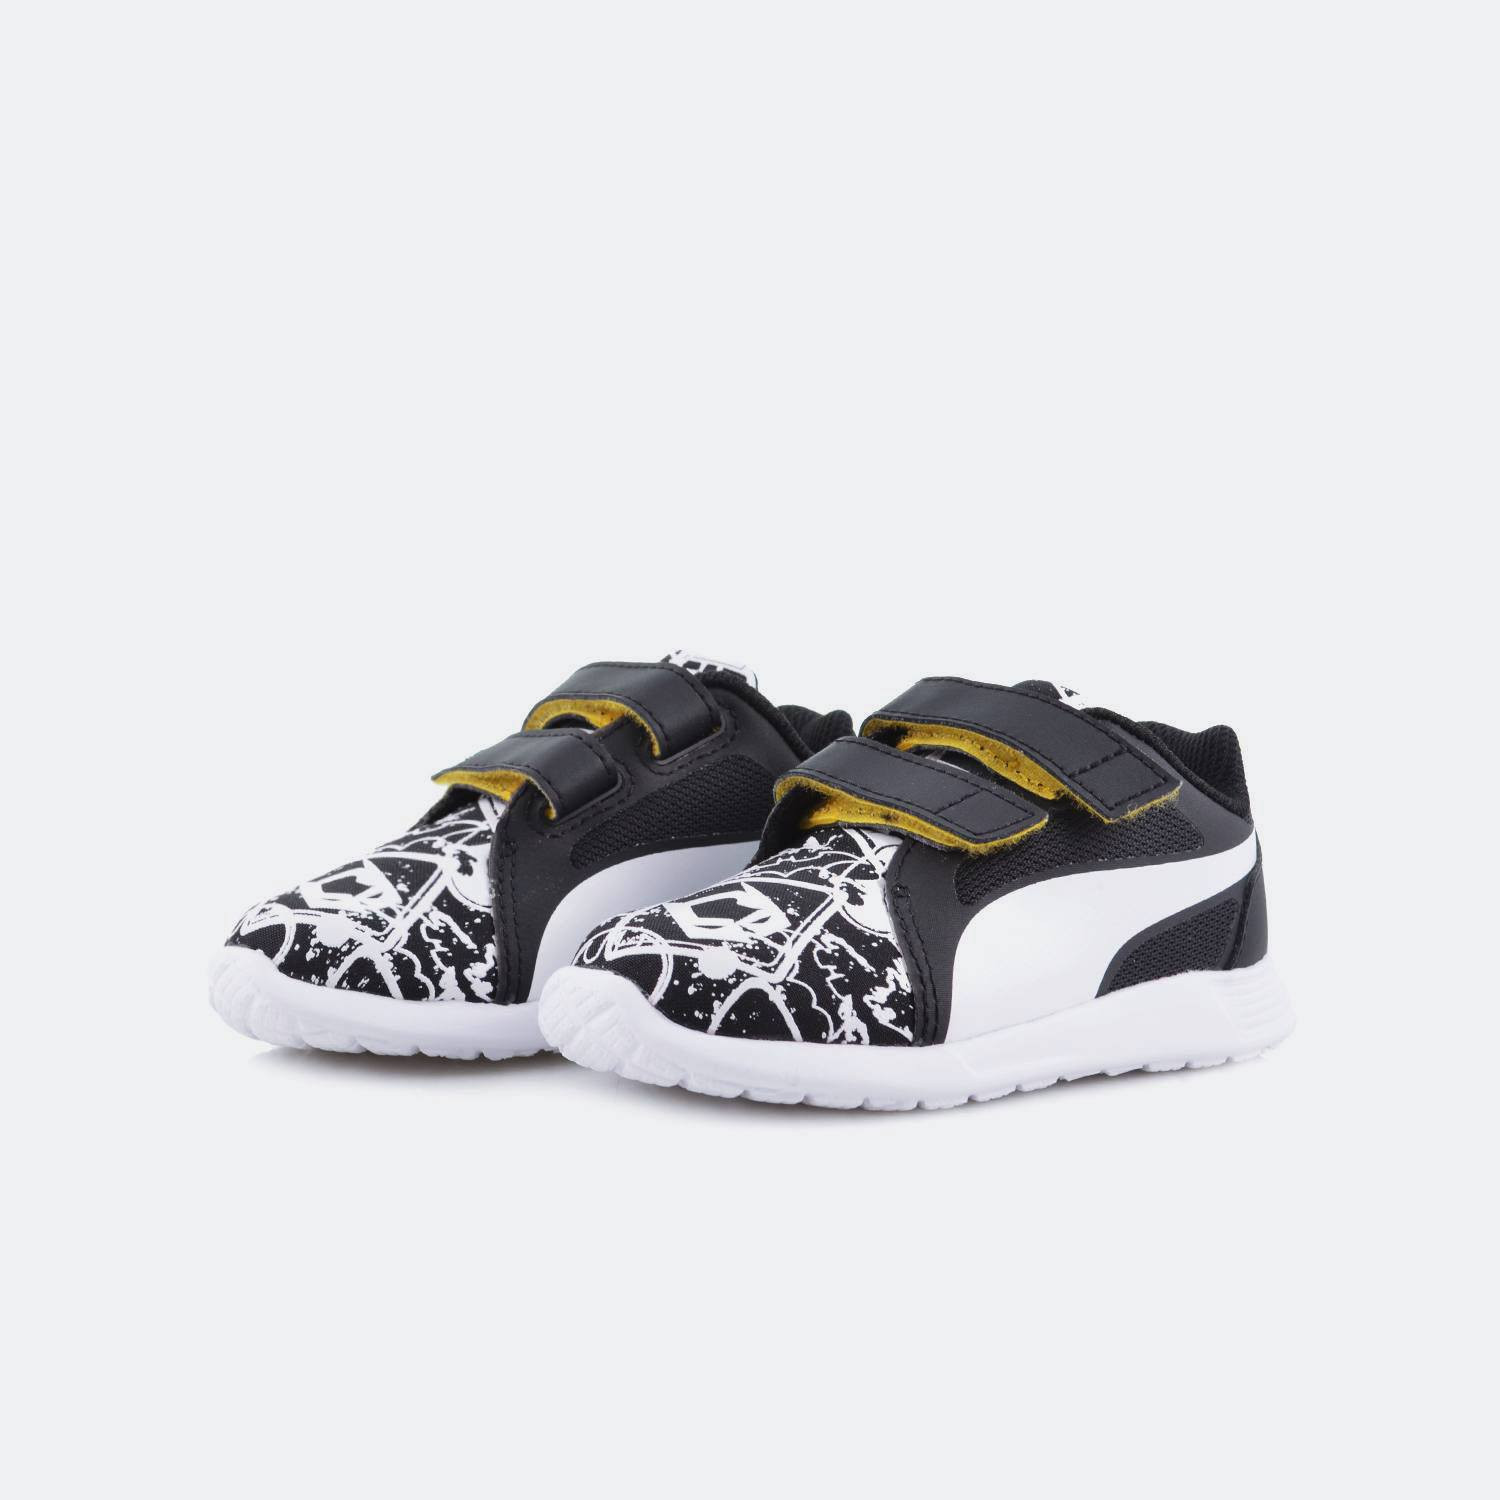 Puma ST Trainer Evo Batman S